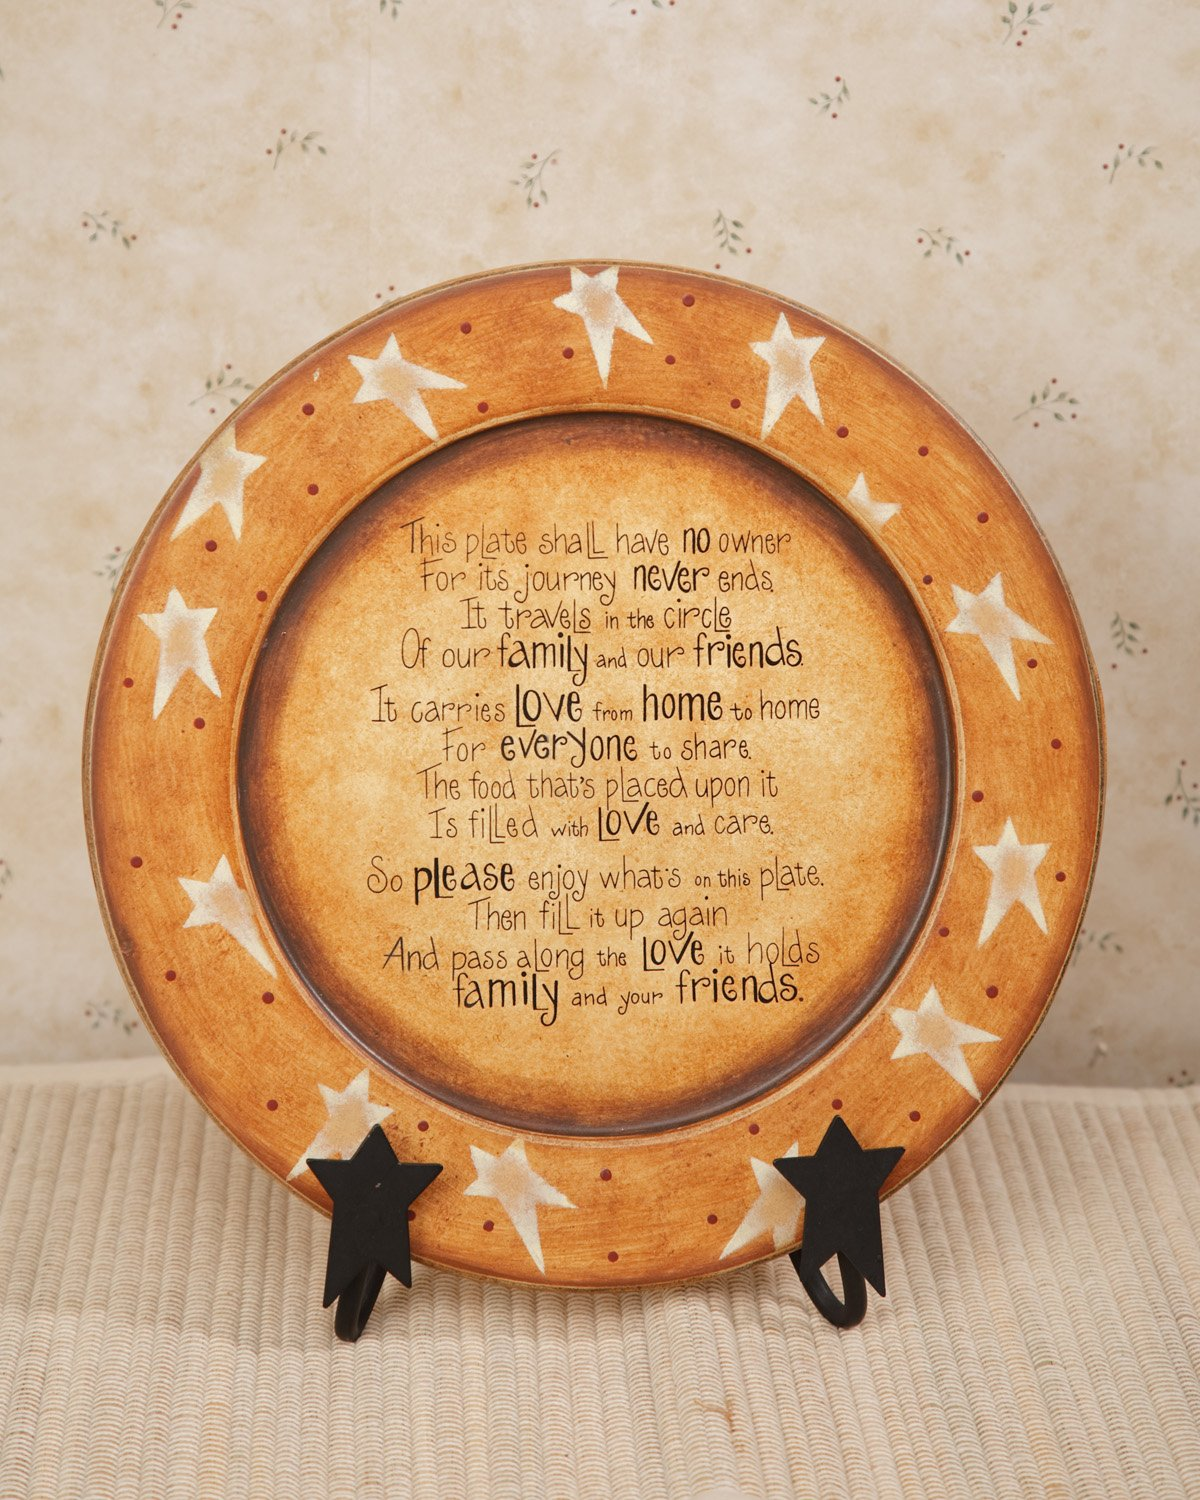 11-3//8-Inch Your Hearts Delight Pass Along Poem Wooden Plate